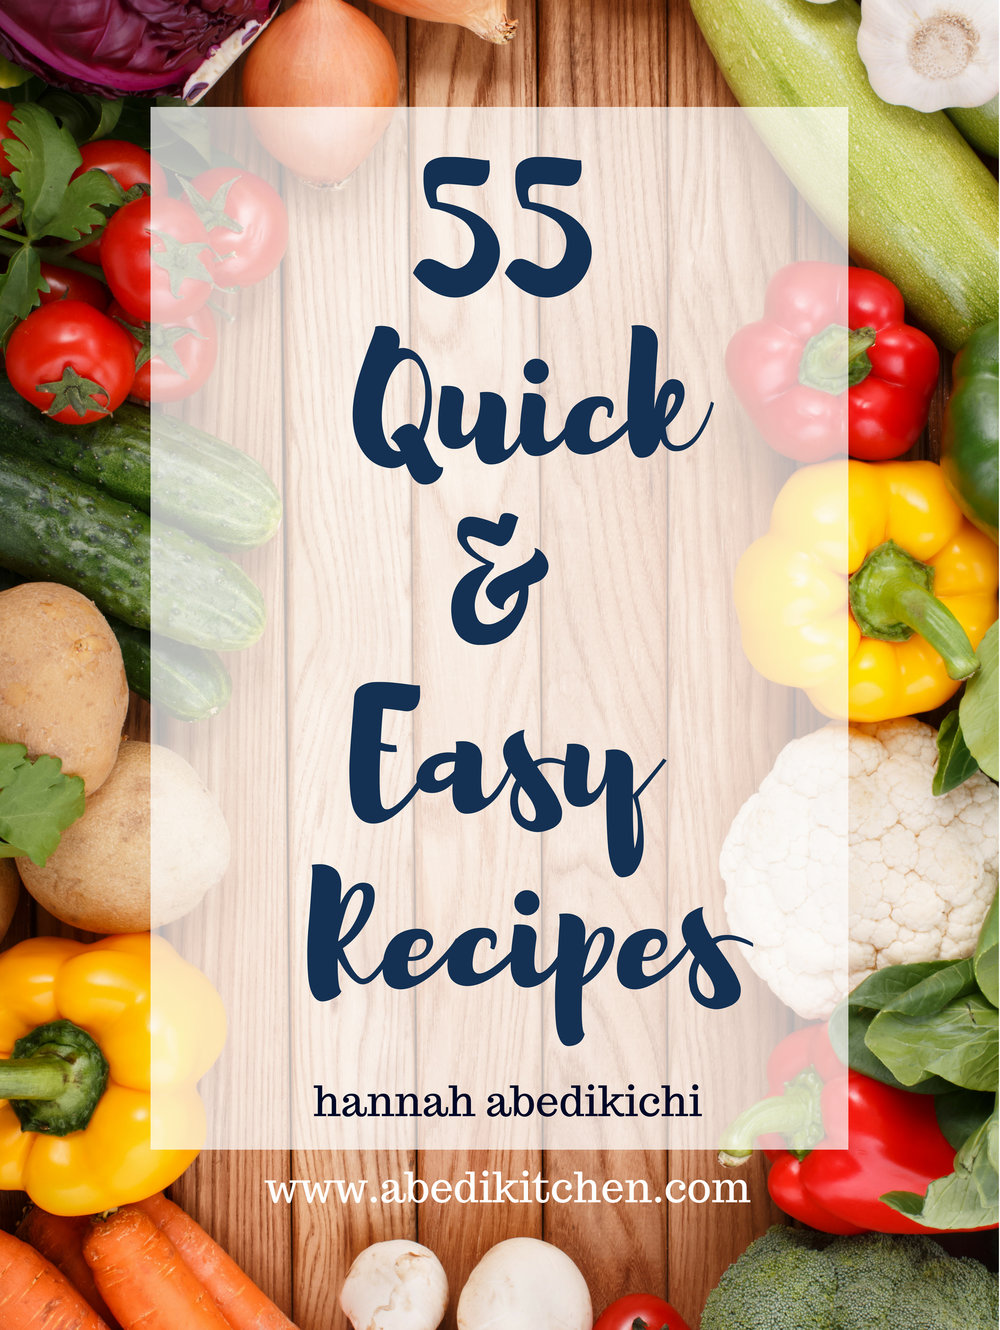 55 quick and easy recipes